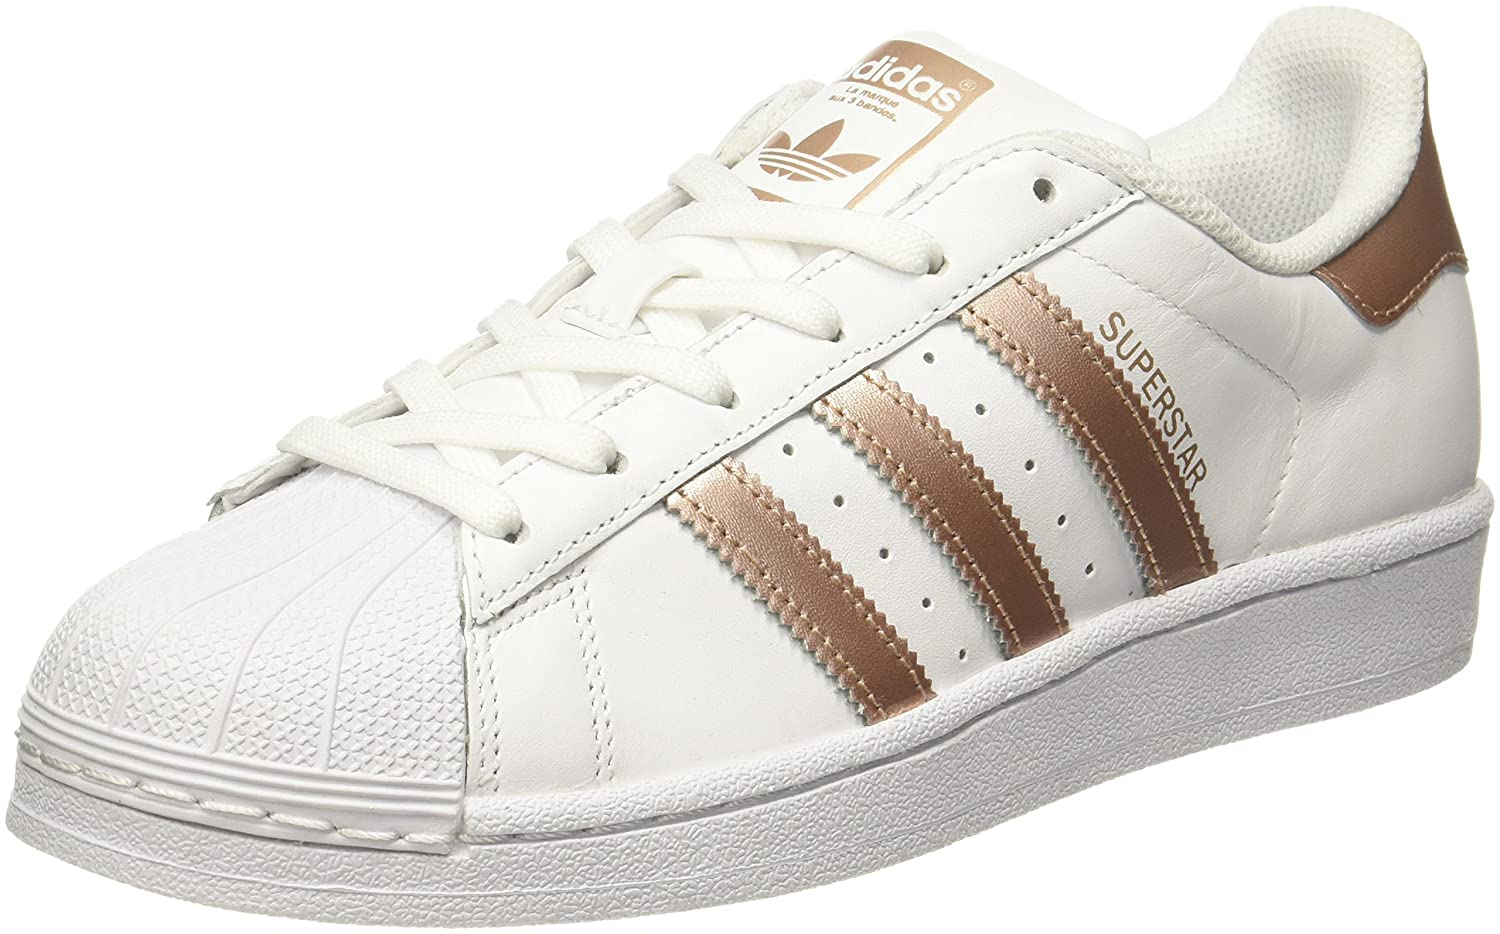 adidas Superstar W, Sneakers Basses Basses Femme, Weiß adidas Blanc (Ftwwht W,/Supcol/Ftwwht) 7e5ed19 - piero.space